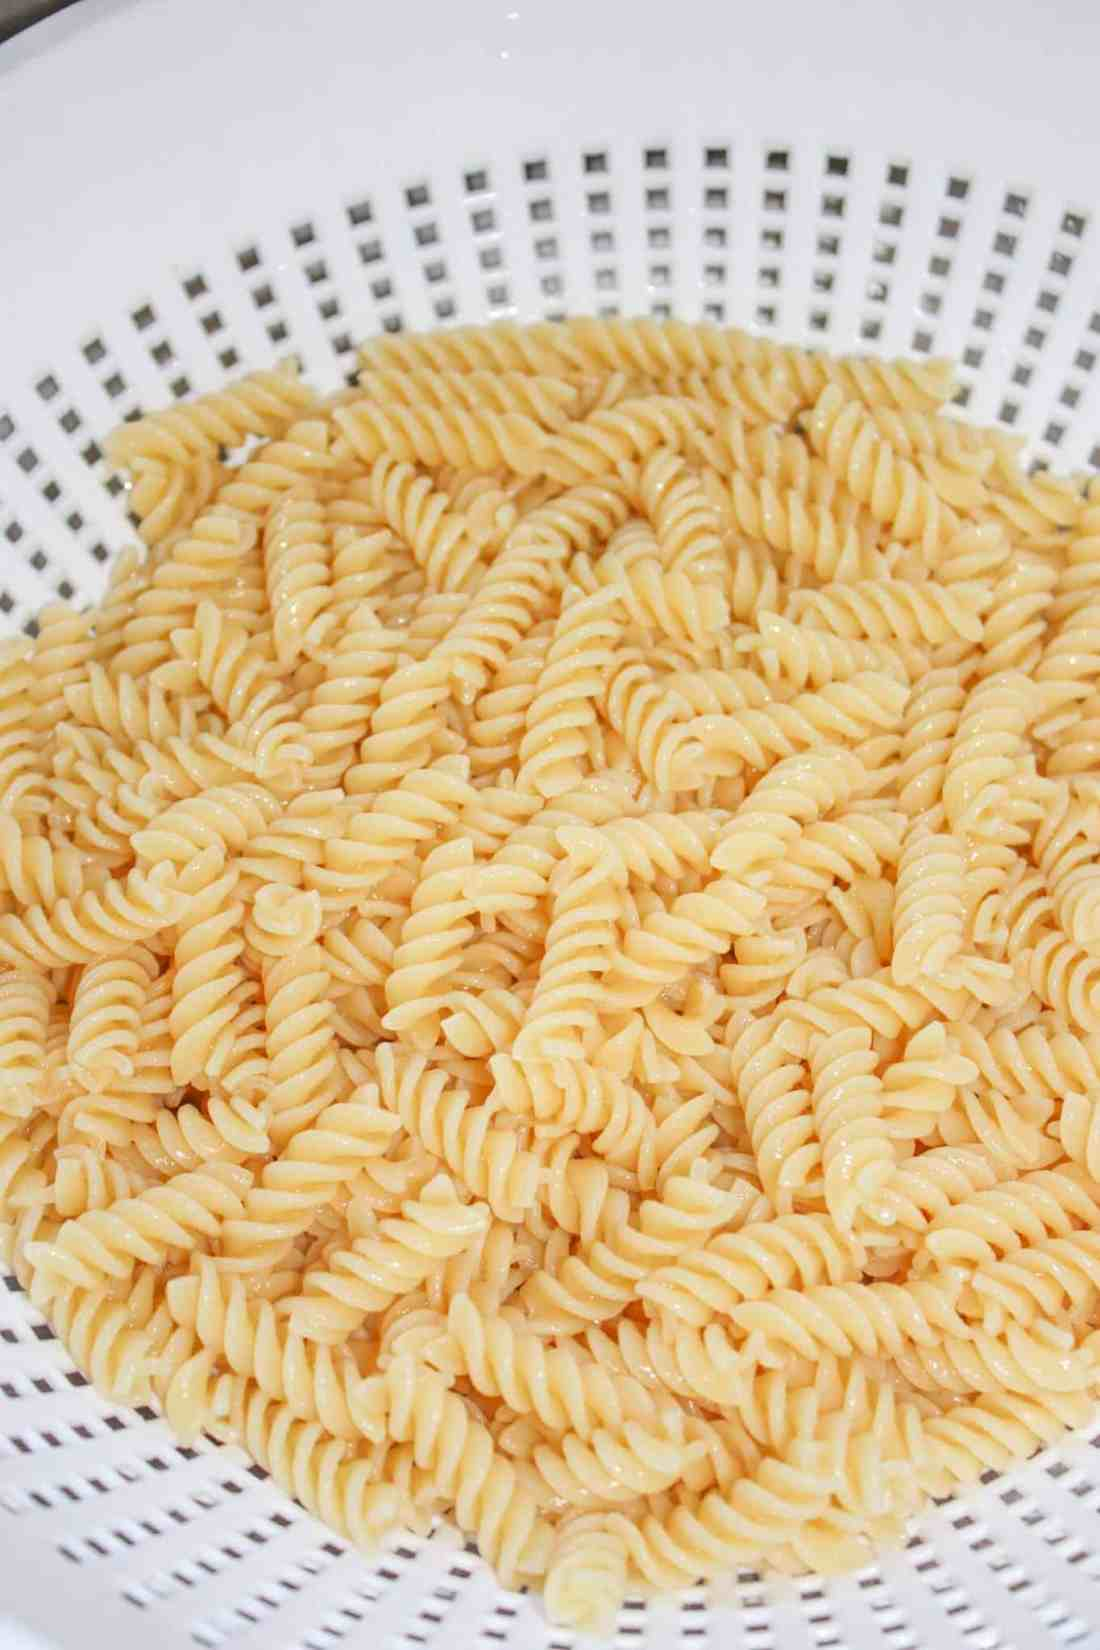 The cooked pasta.